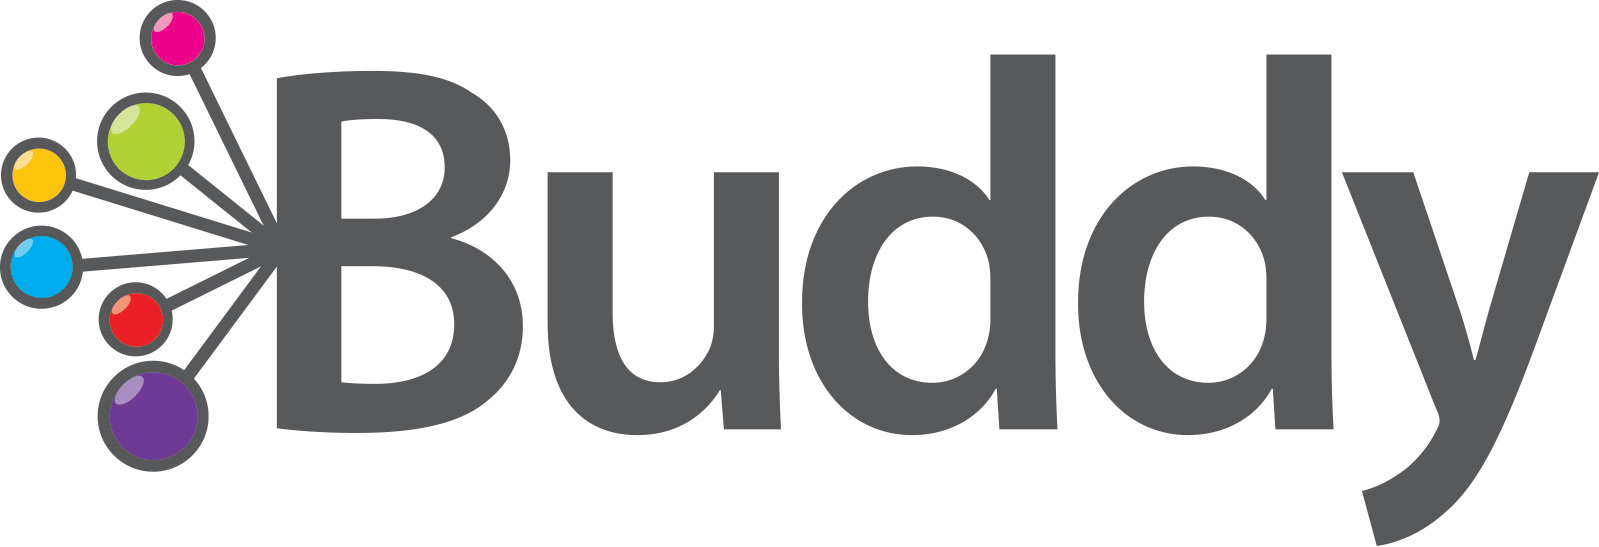 Pivoting away from mobile apps, Buddy launches new ...